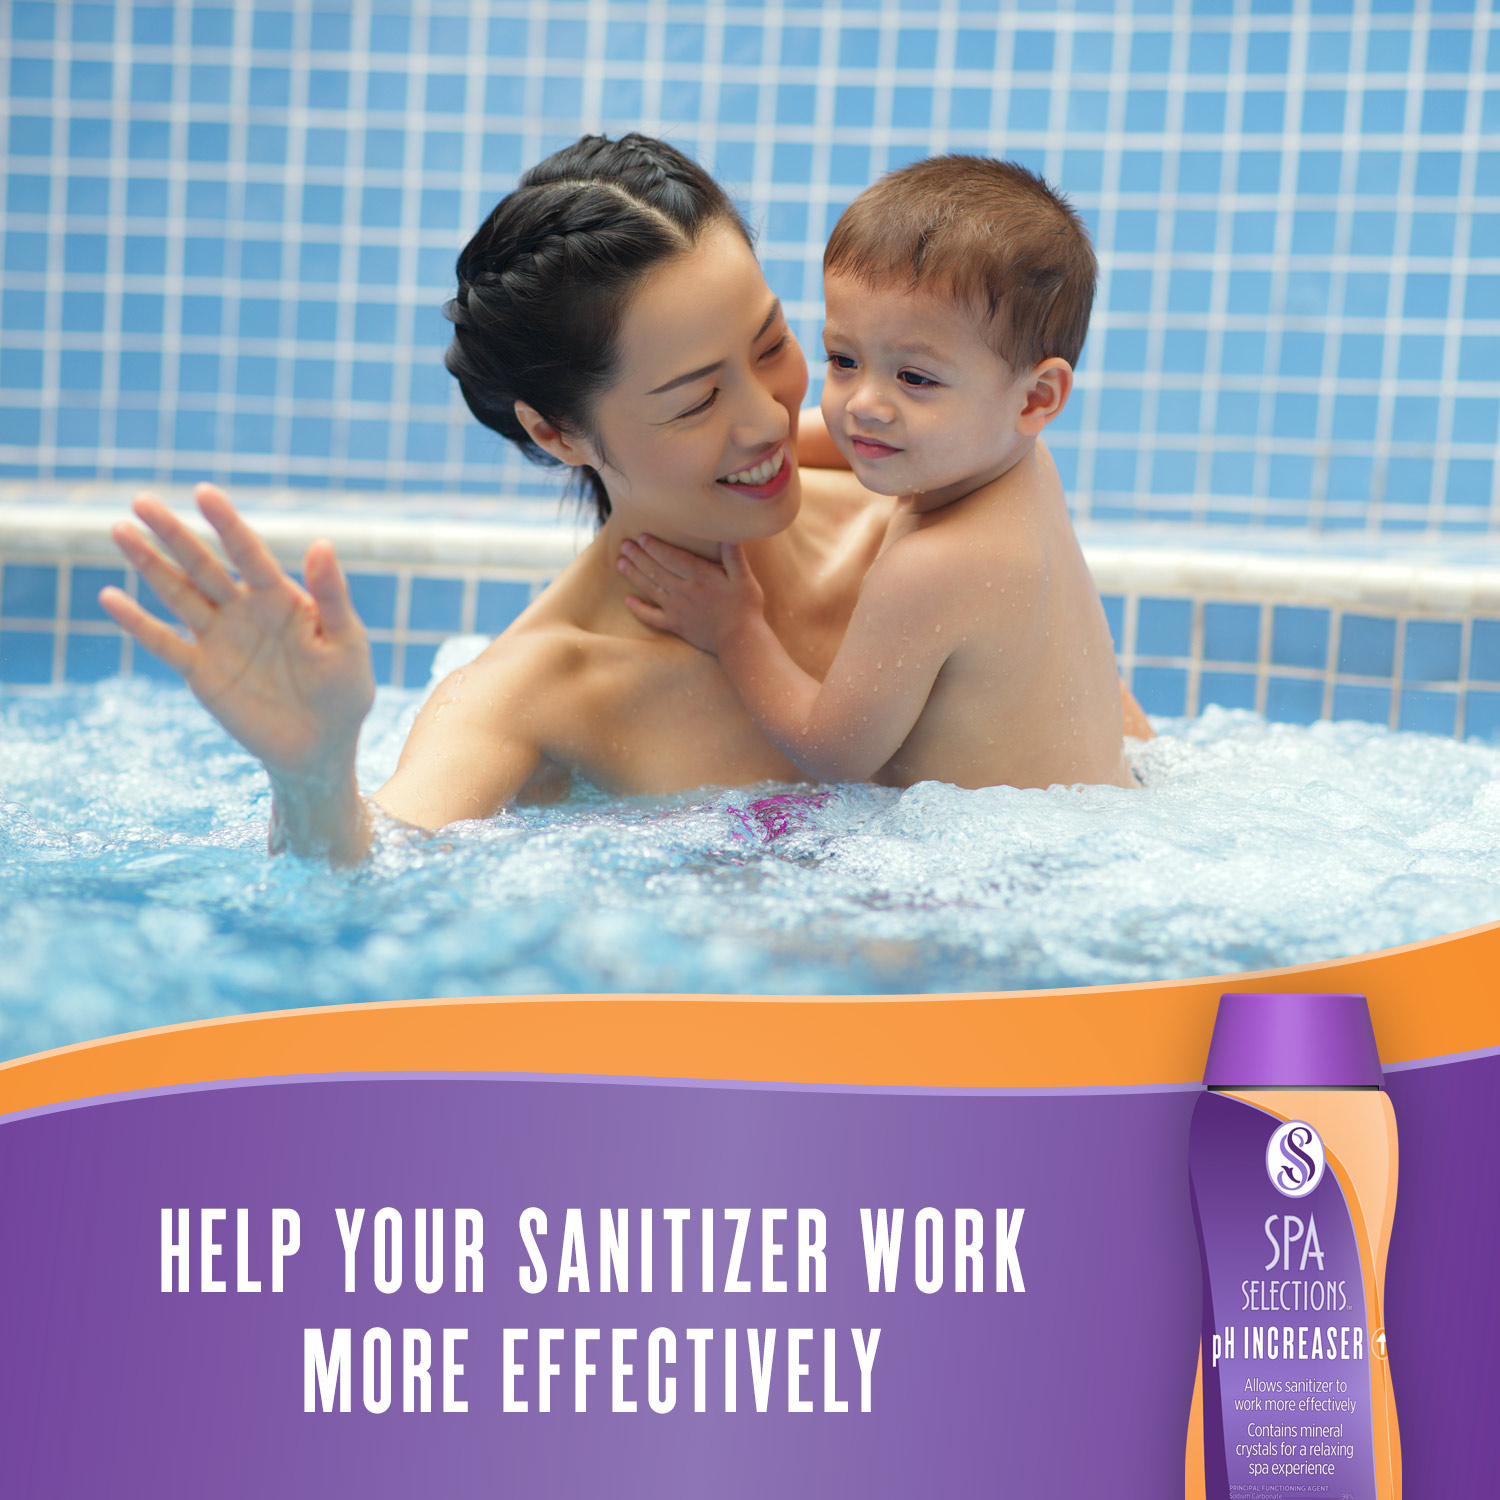 Mother holding young child enjoying a hot tub. Help your sanitizer work more effectively with Spa Selections pH Increaser.